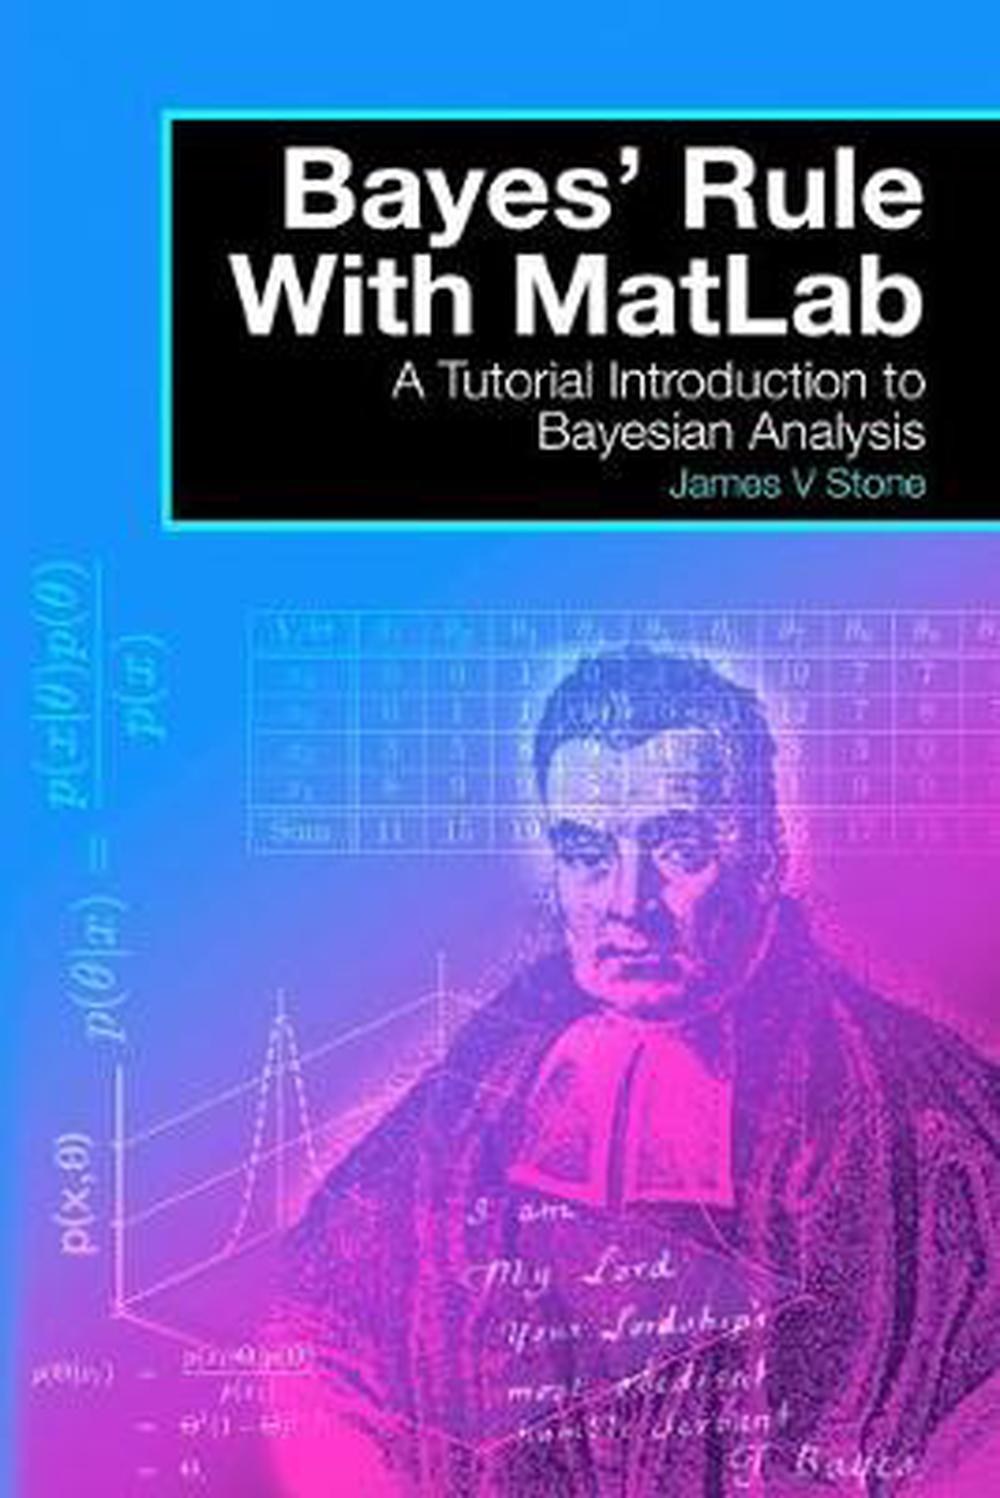 Details about Bayes' Rule with MatLab: A Tutorial Introduction to Bayesian  Analysis by James V